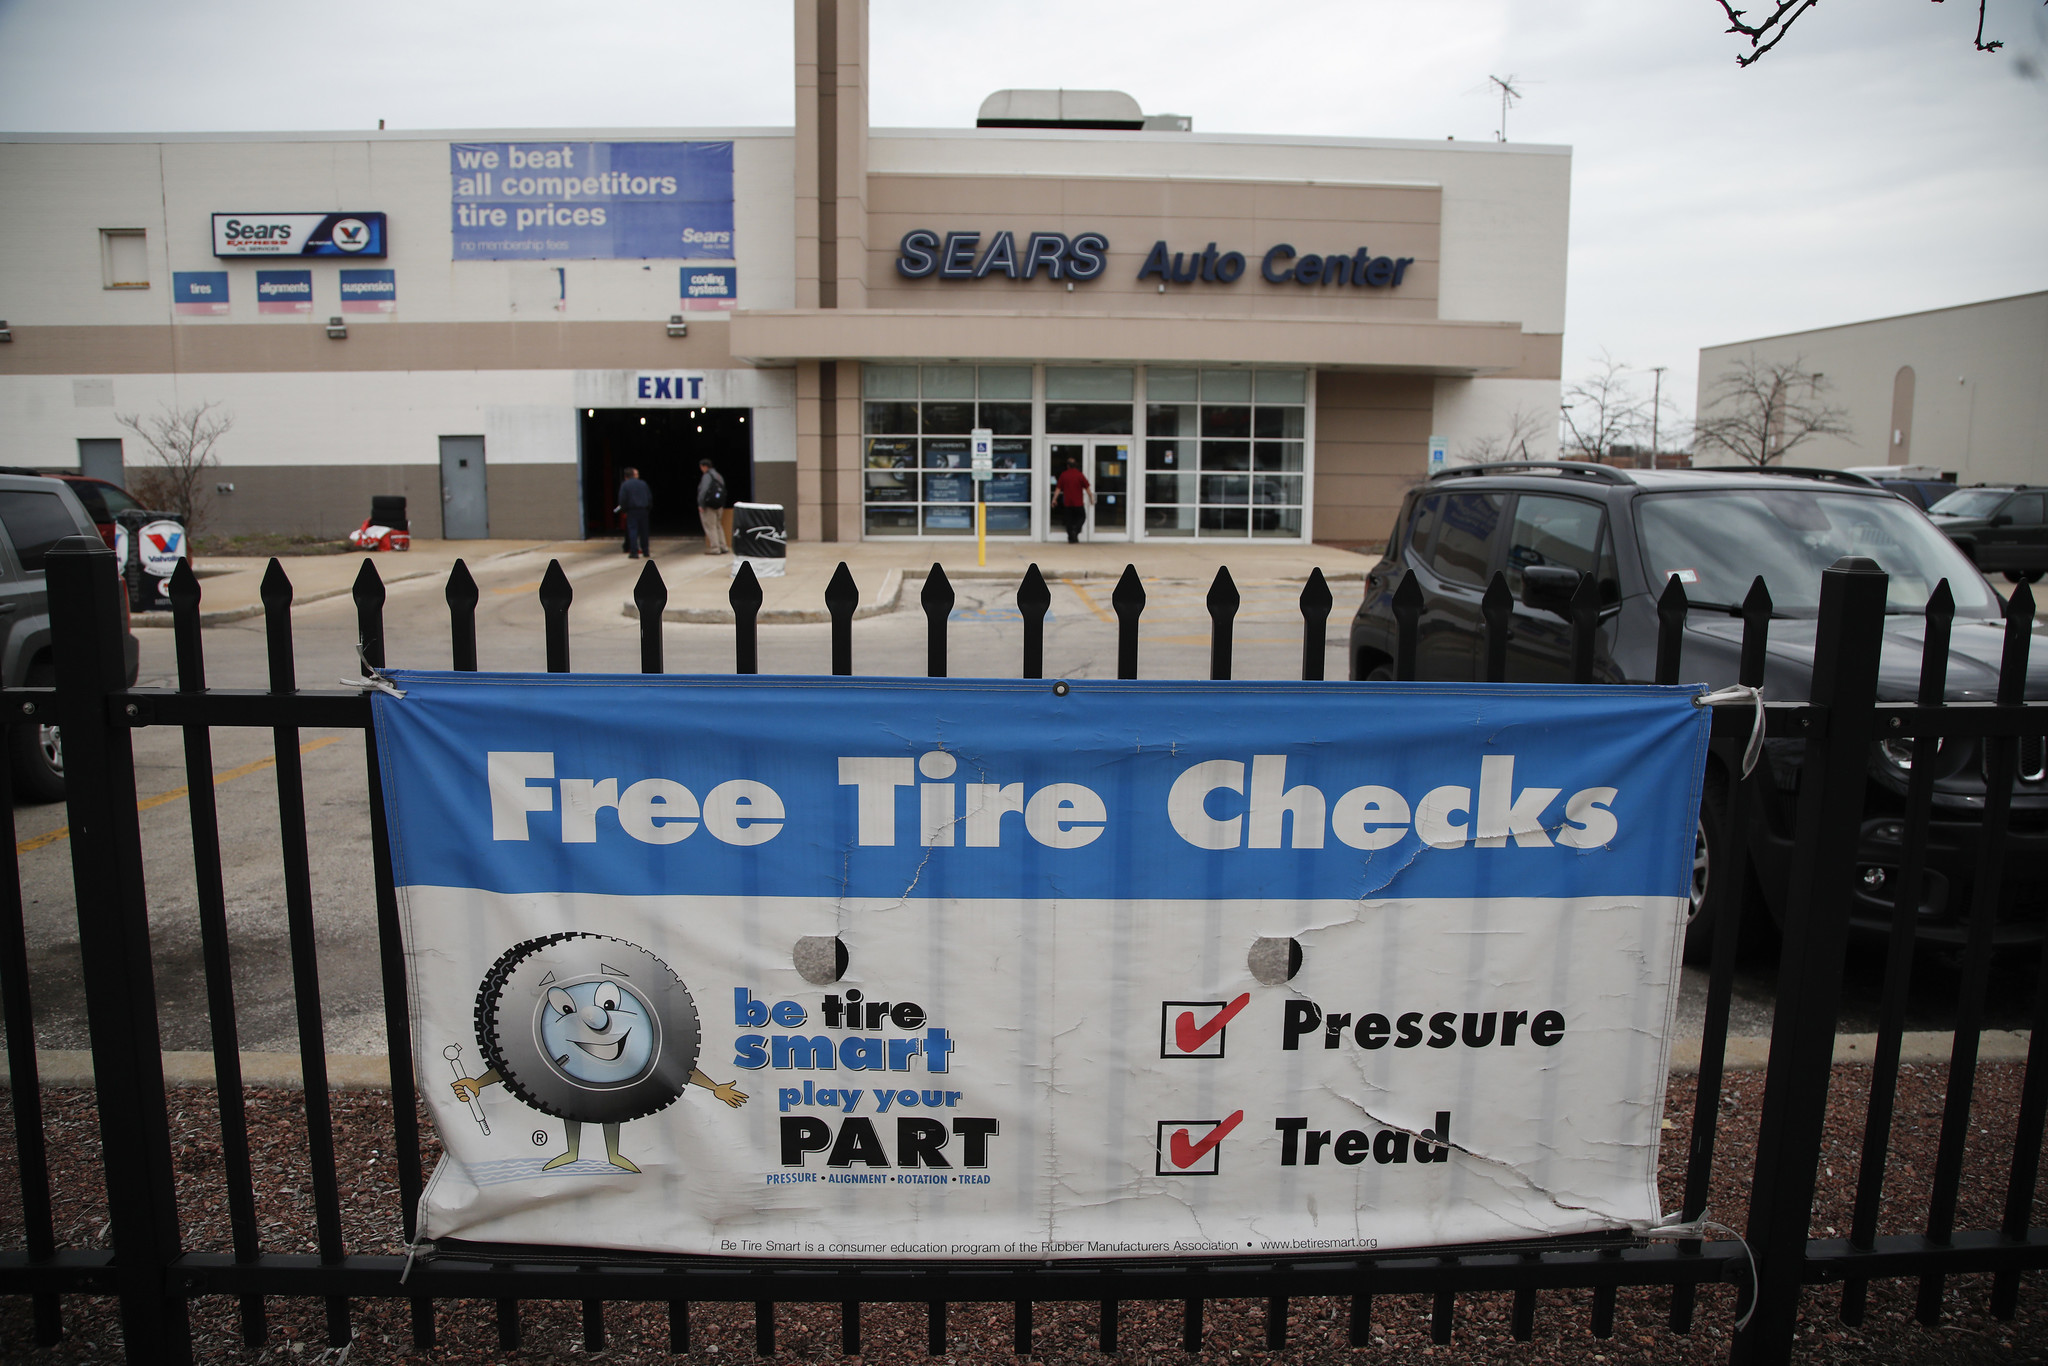 Sears Amazon Strike Deal On Tire Installation Chicago Tribune